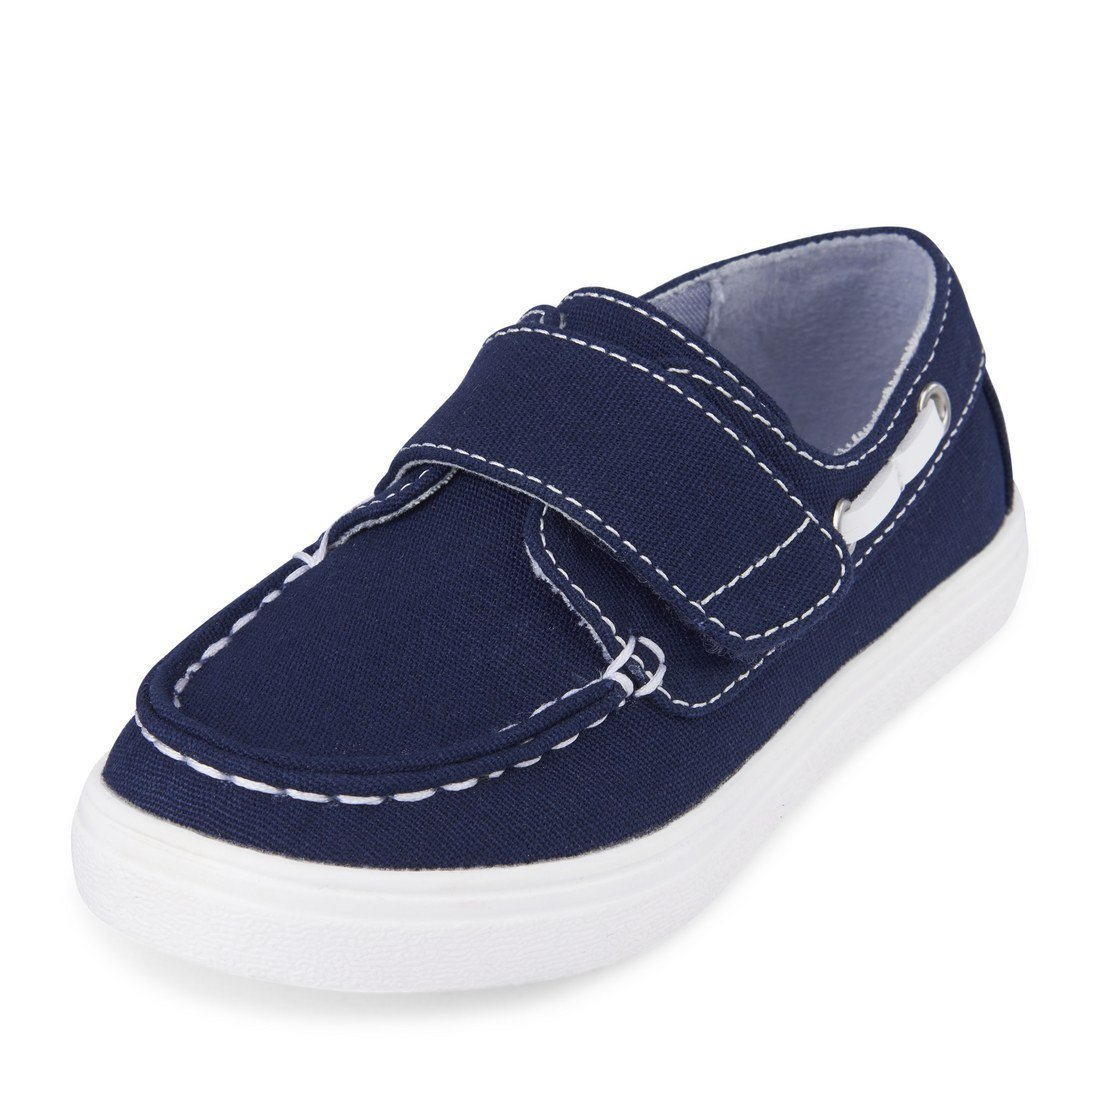 The Children's Place Boys' TB Velcro Street Slipper, Navy, TDDLR 8 Medium US Big Kid